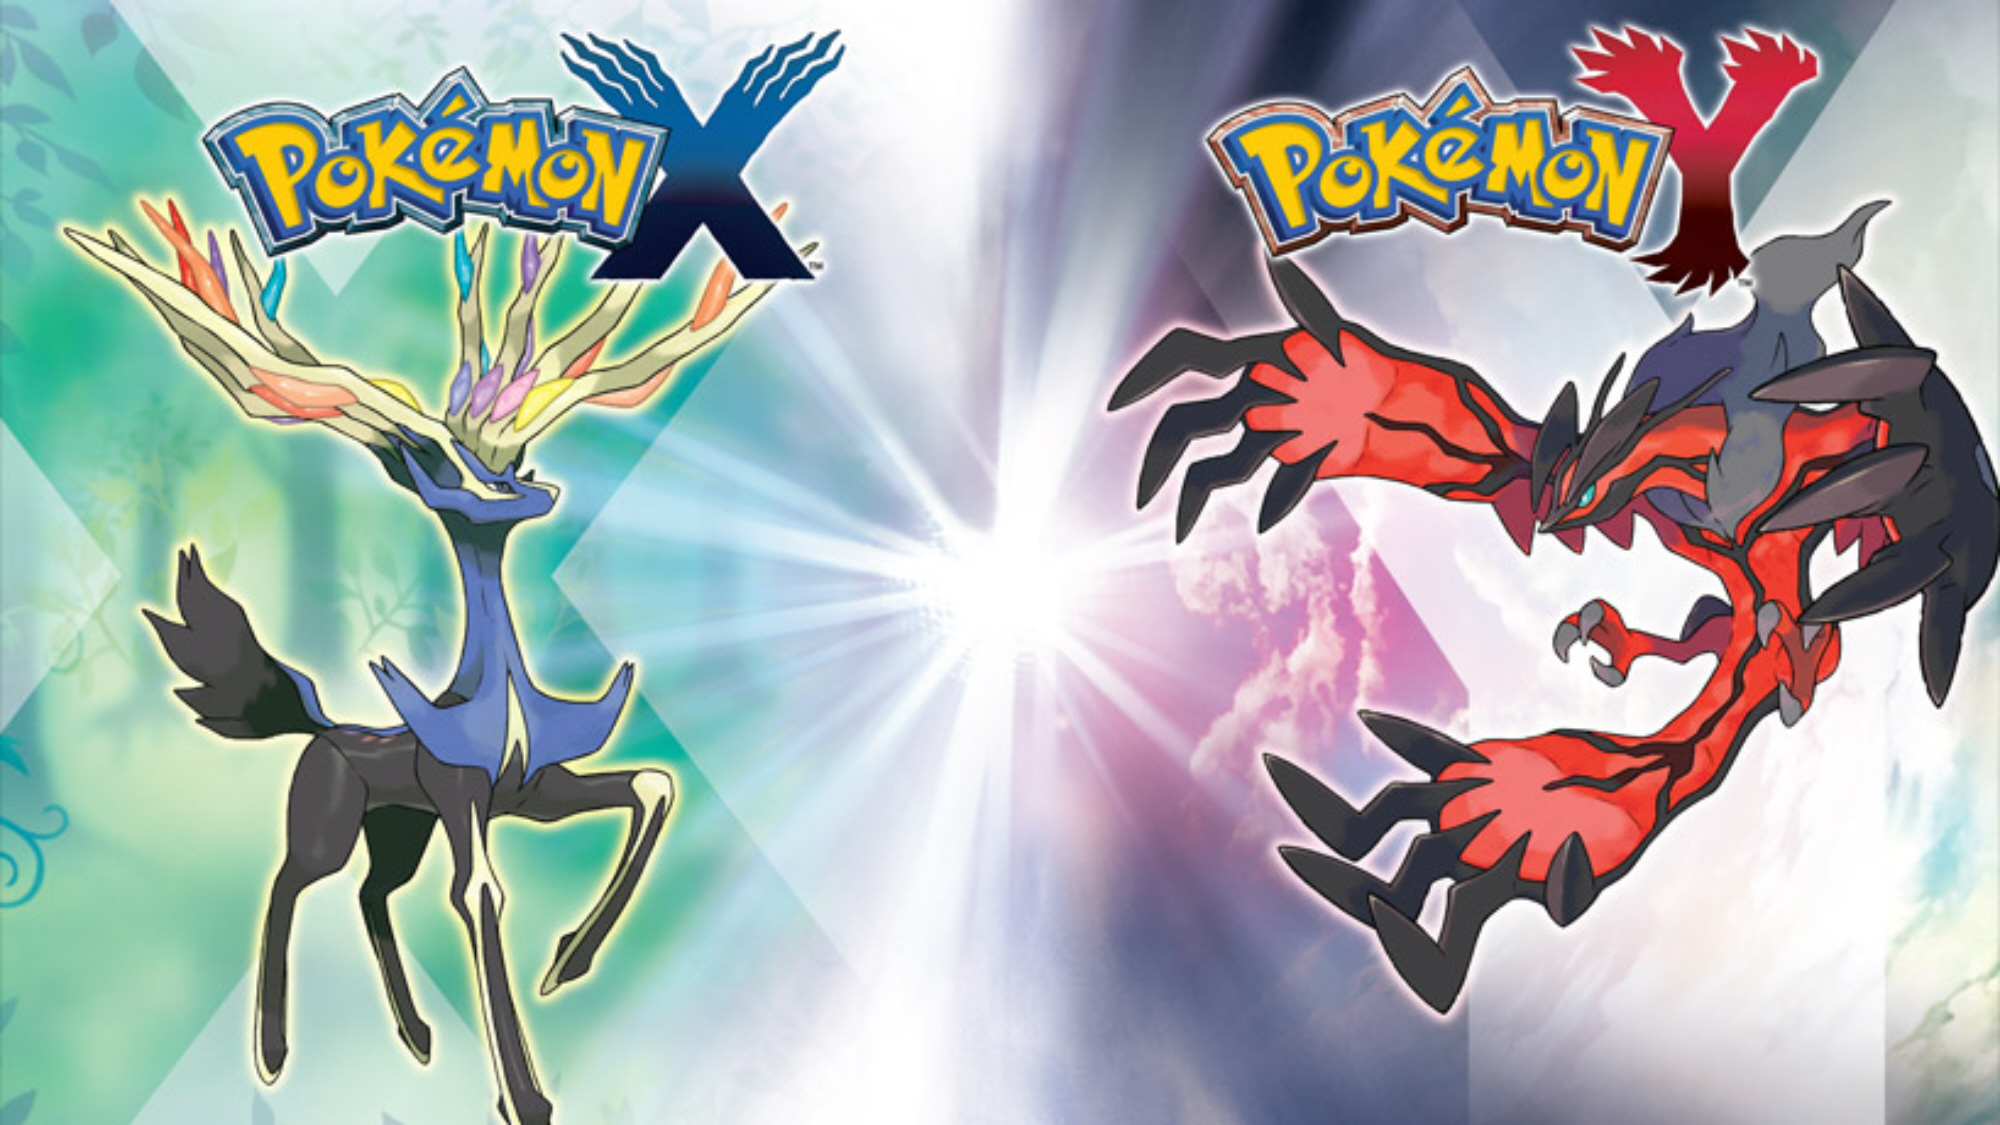 Pokemon XY Wallpaper Xerneas Yveltal Legendaries Artwork